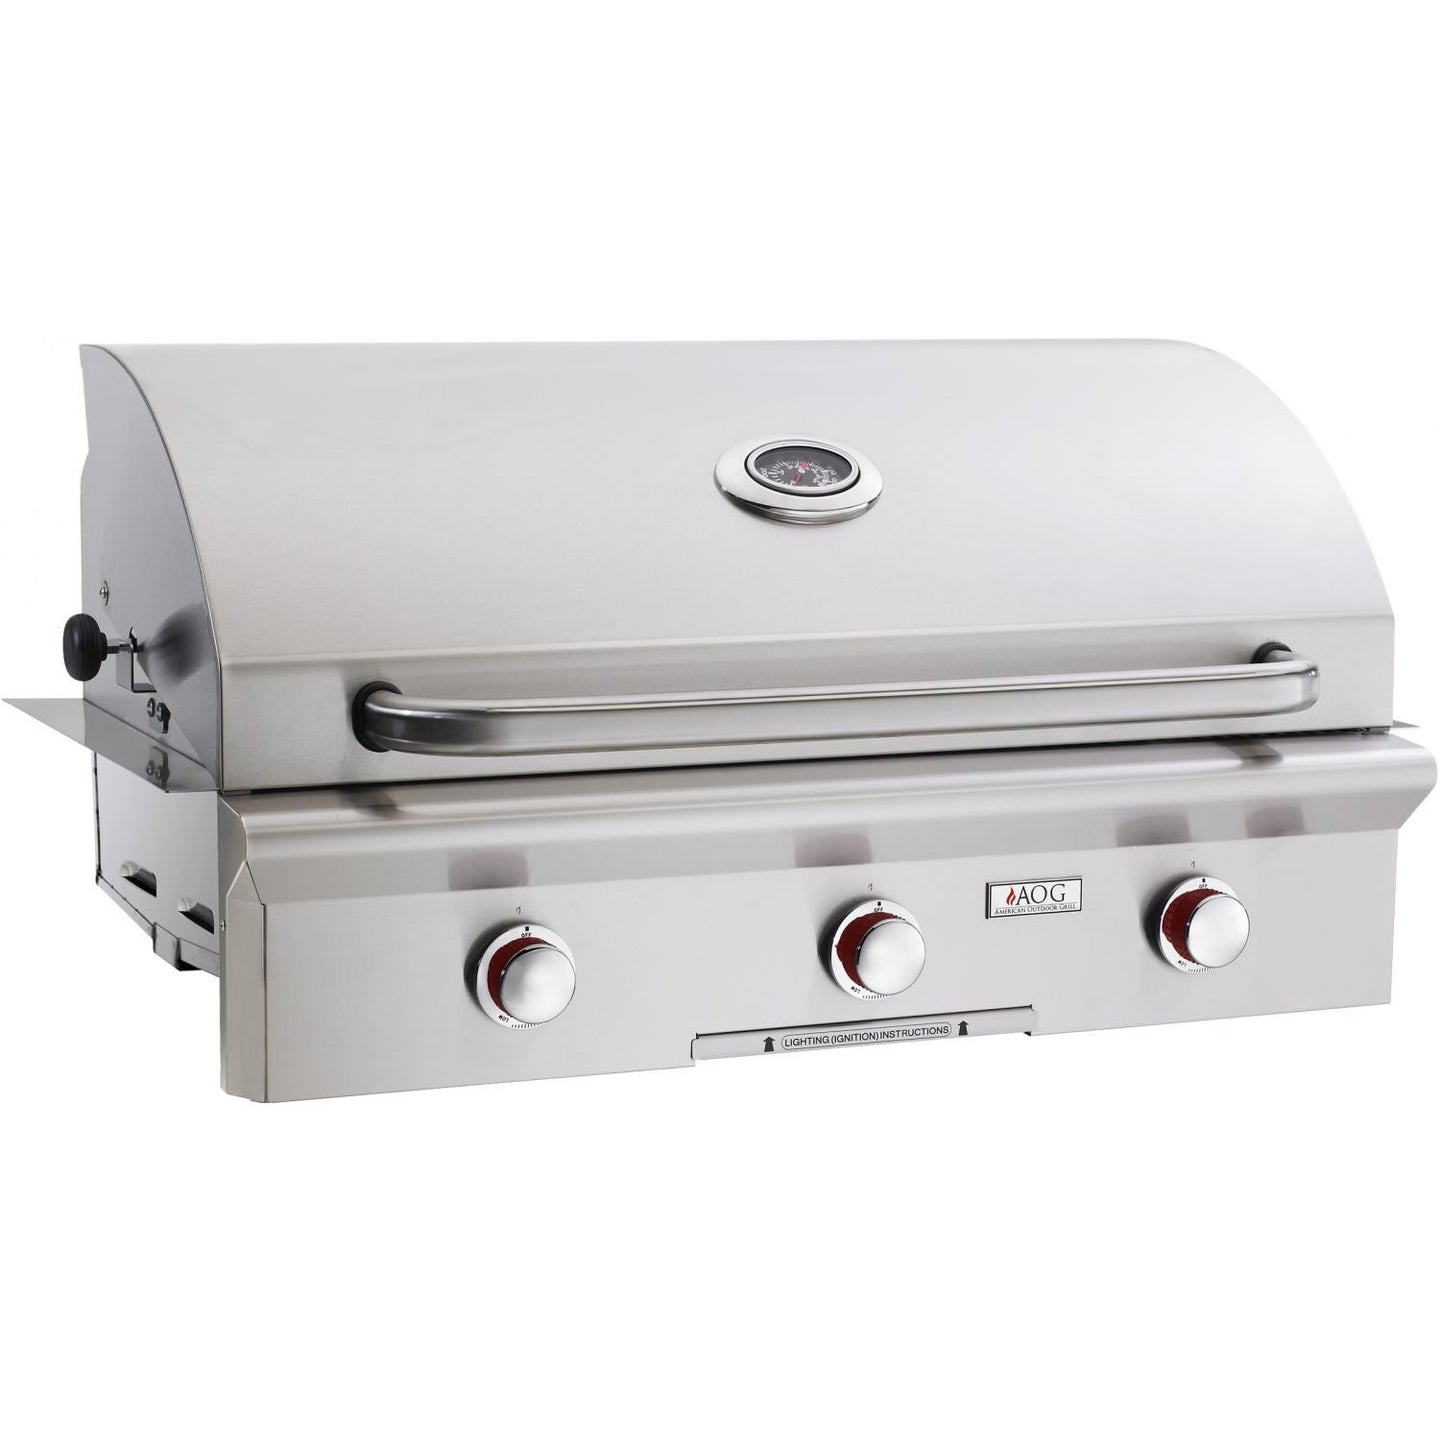 American Outdoor Grill T-Series 36-Inch 3-Burner Built-In Gas Grill - 36NBT-00SP